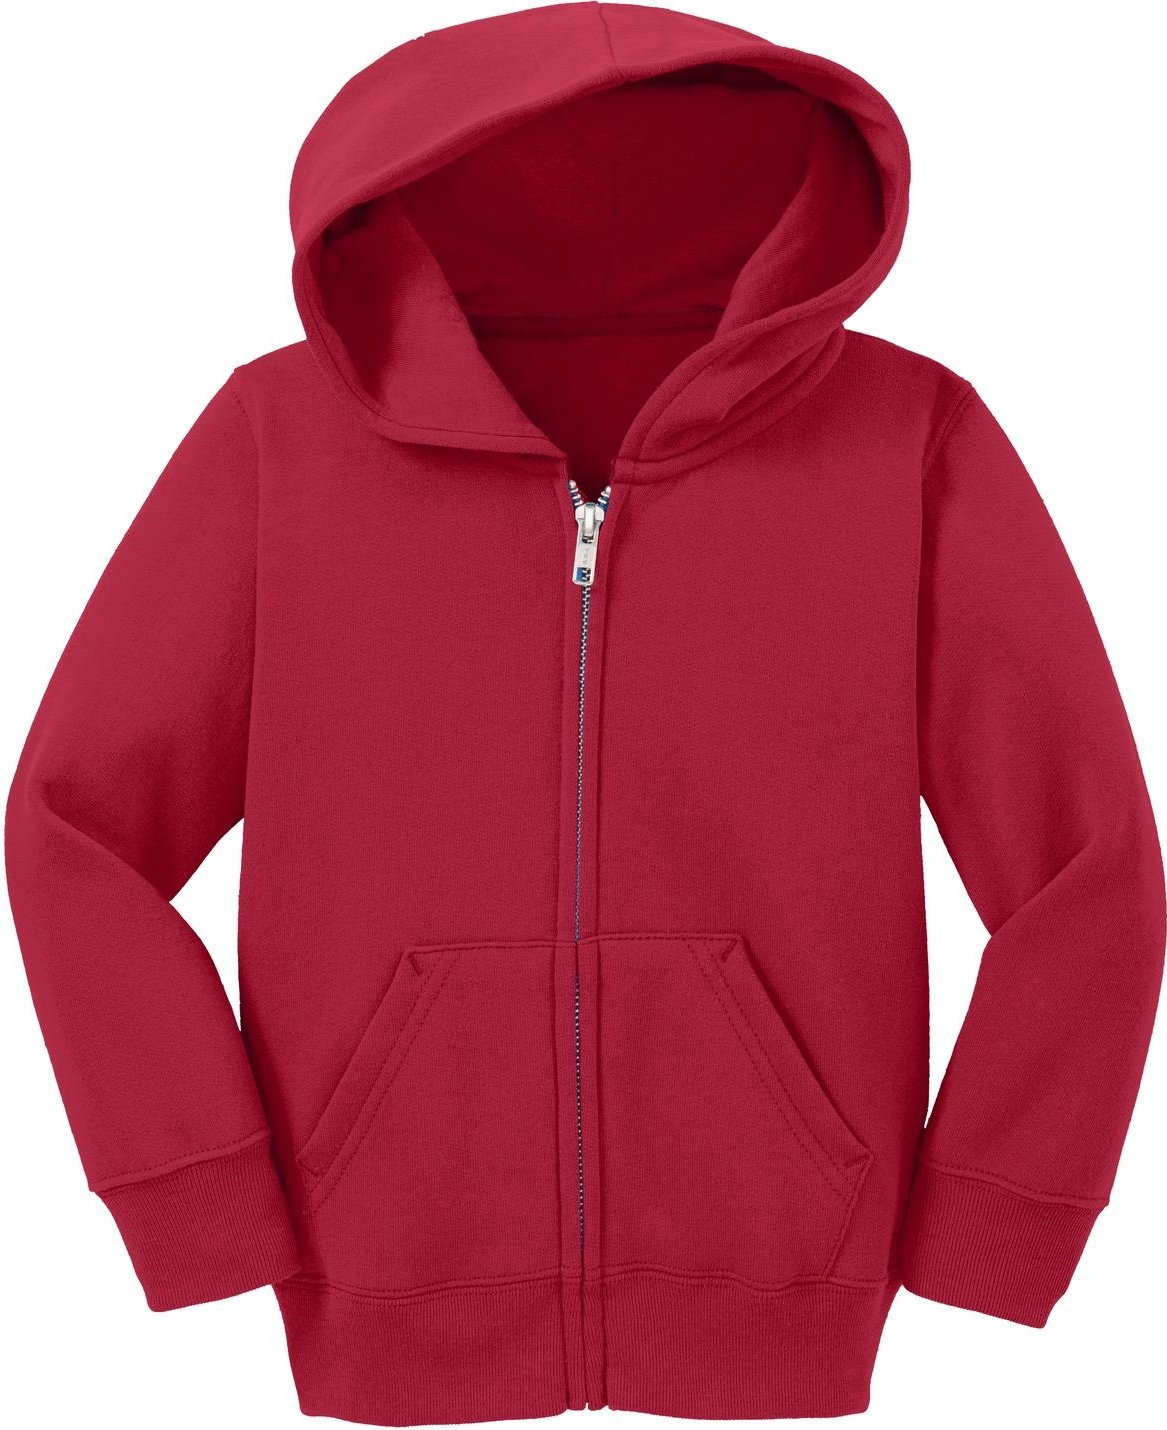 Precious Cargo unisex-baby Full Zip Hooded Sweatshirt